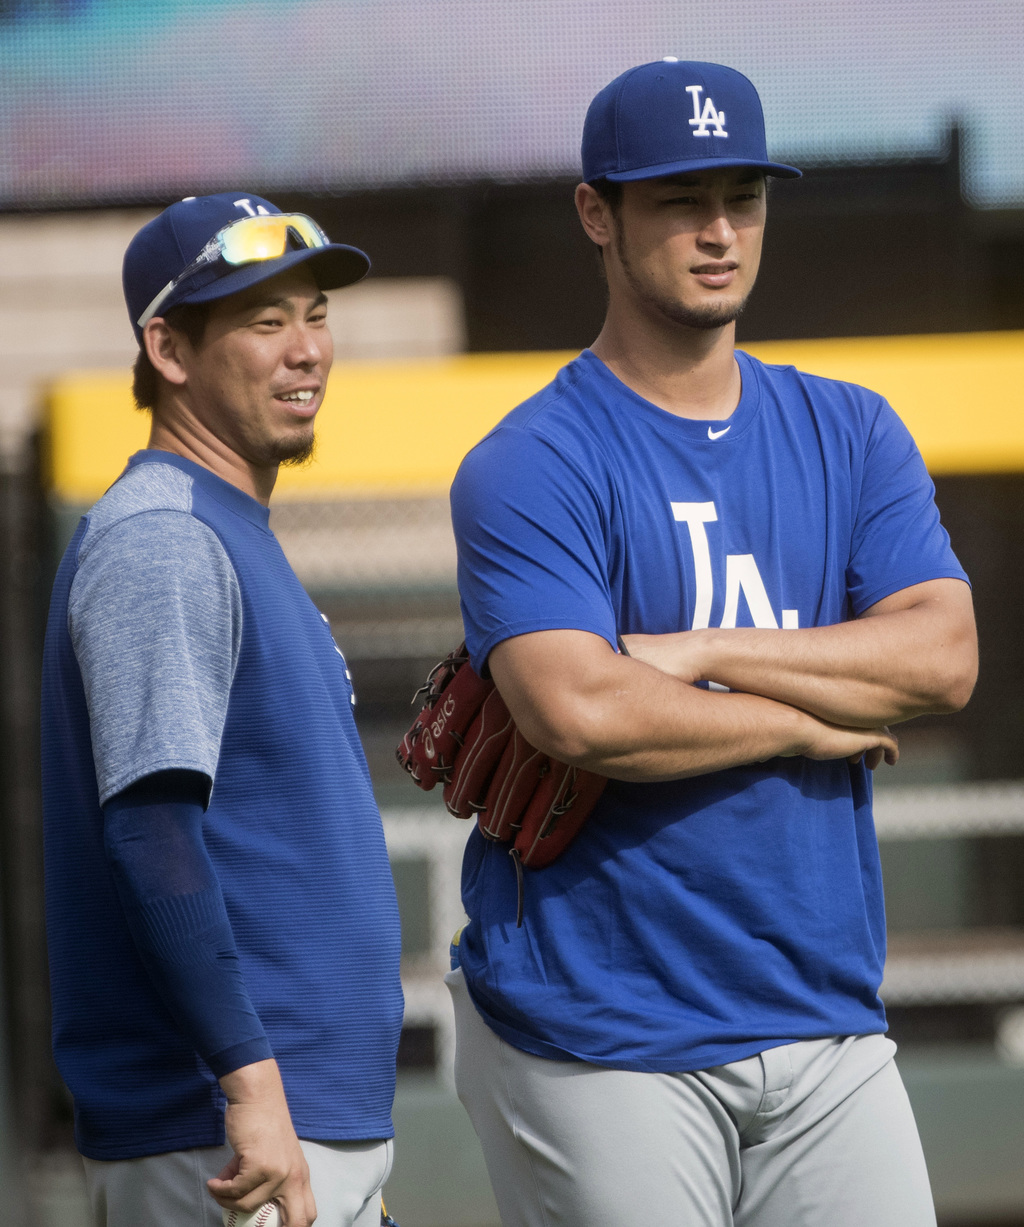 Los Angeles Dodgers pitchers Yu Darvish, right, and Kenta Maeda, both from Japan wait to warm up before a baseball game against the Atlanta Braves, We...